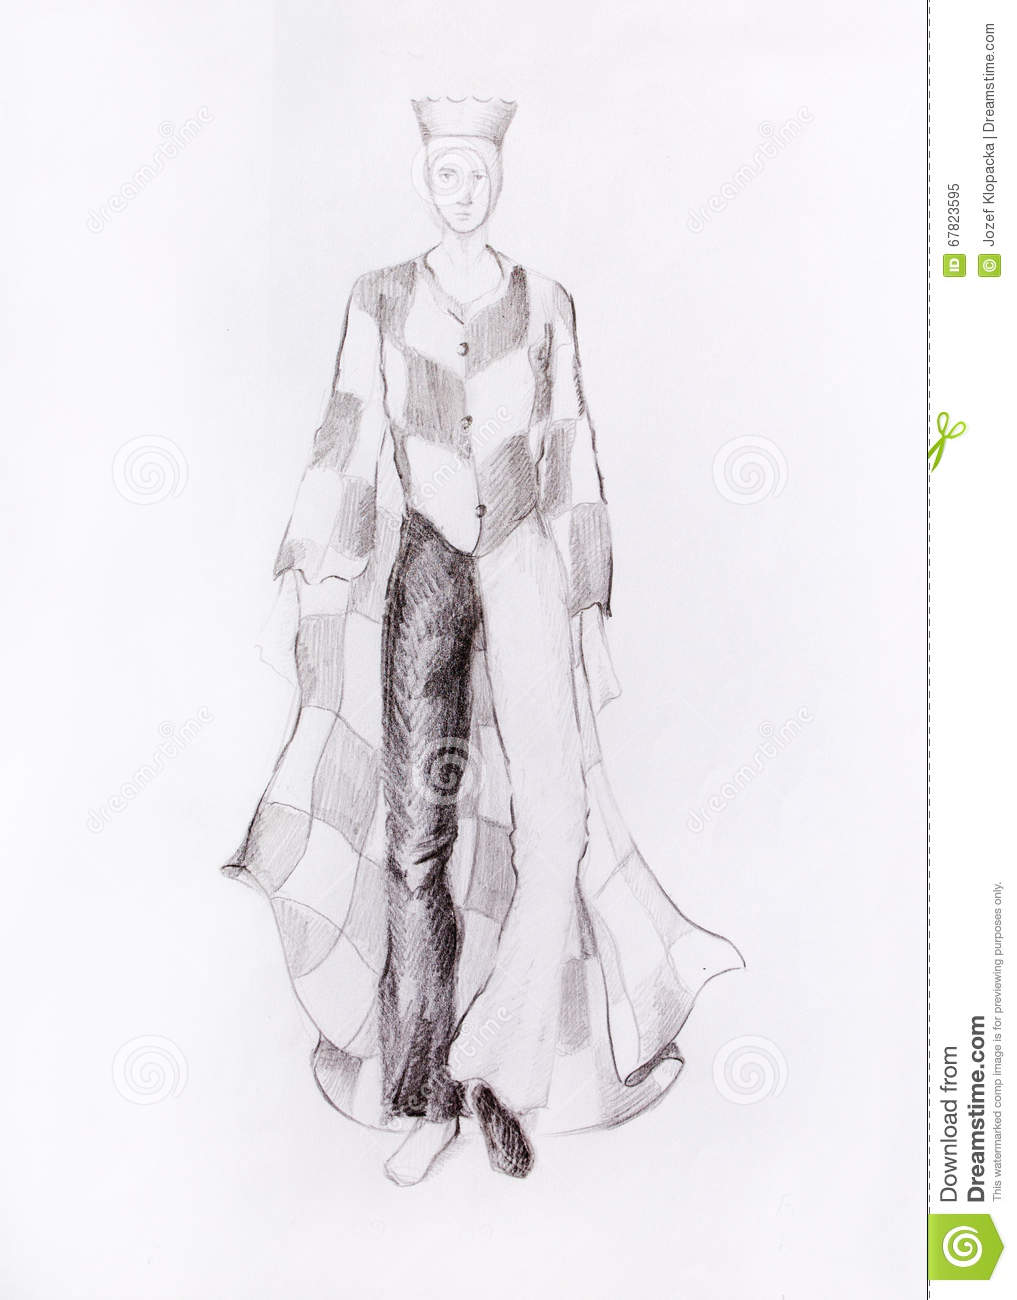 Drawing Male Fashion Clothes With A Checkerboard Pattern Chess King Color Pencil Sketch On Paper Stock Illustration Illustration Of Crown Cape 67823595